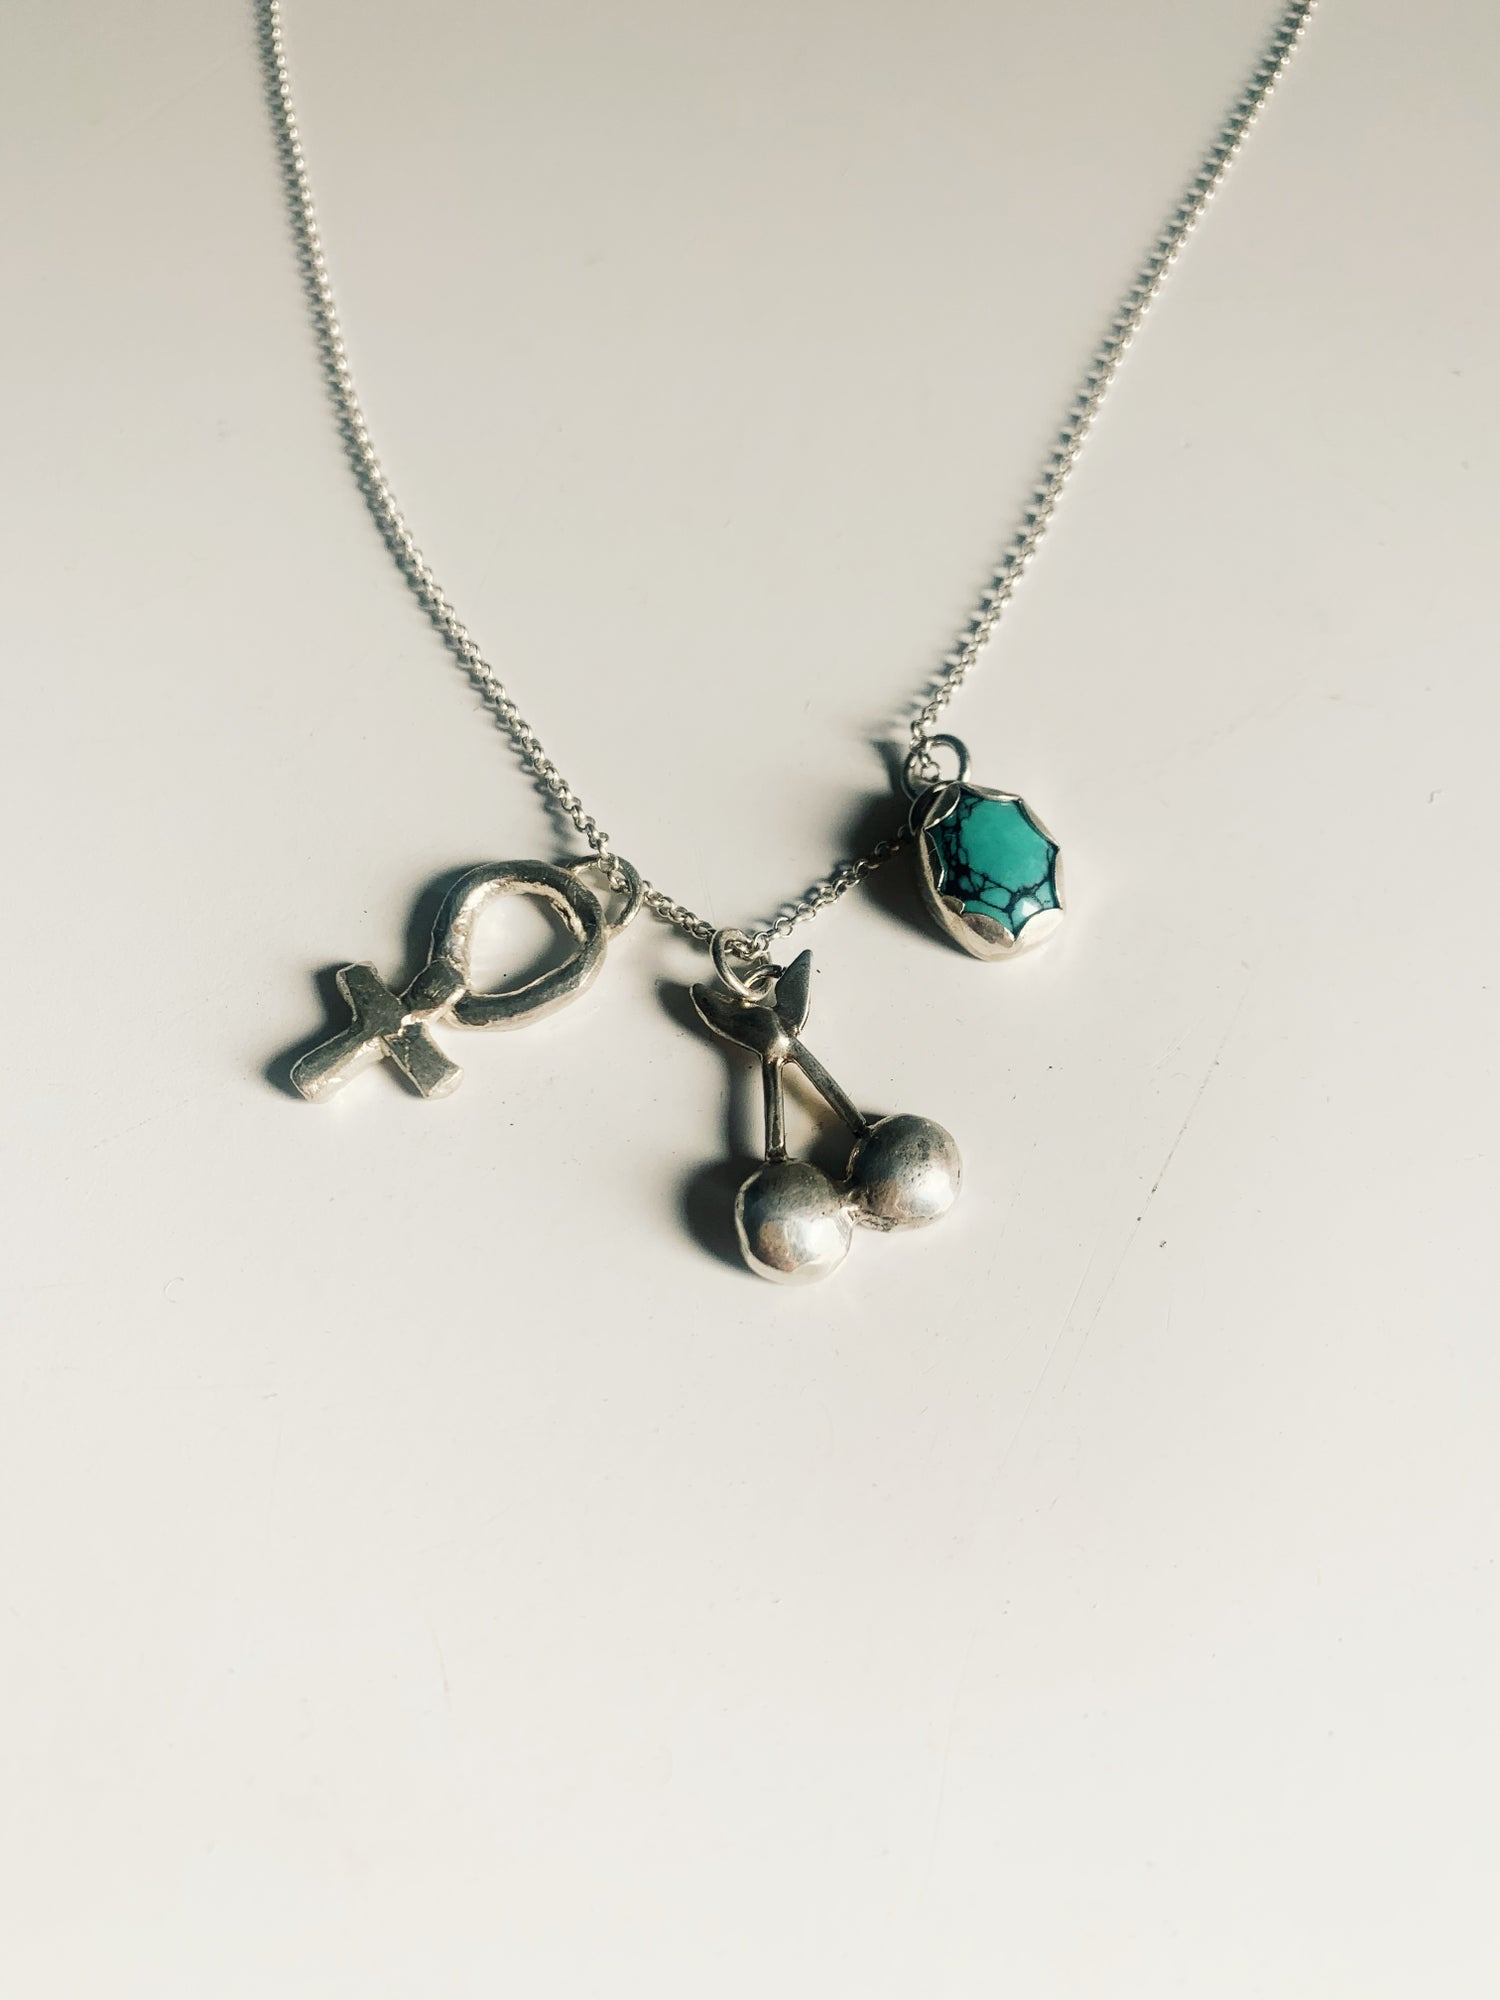 Image of Silver + Turquoise Charm Necklace